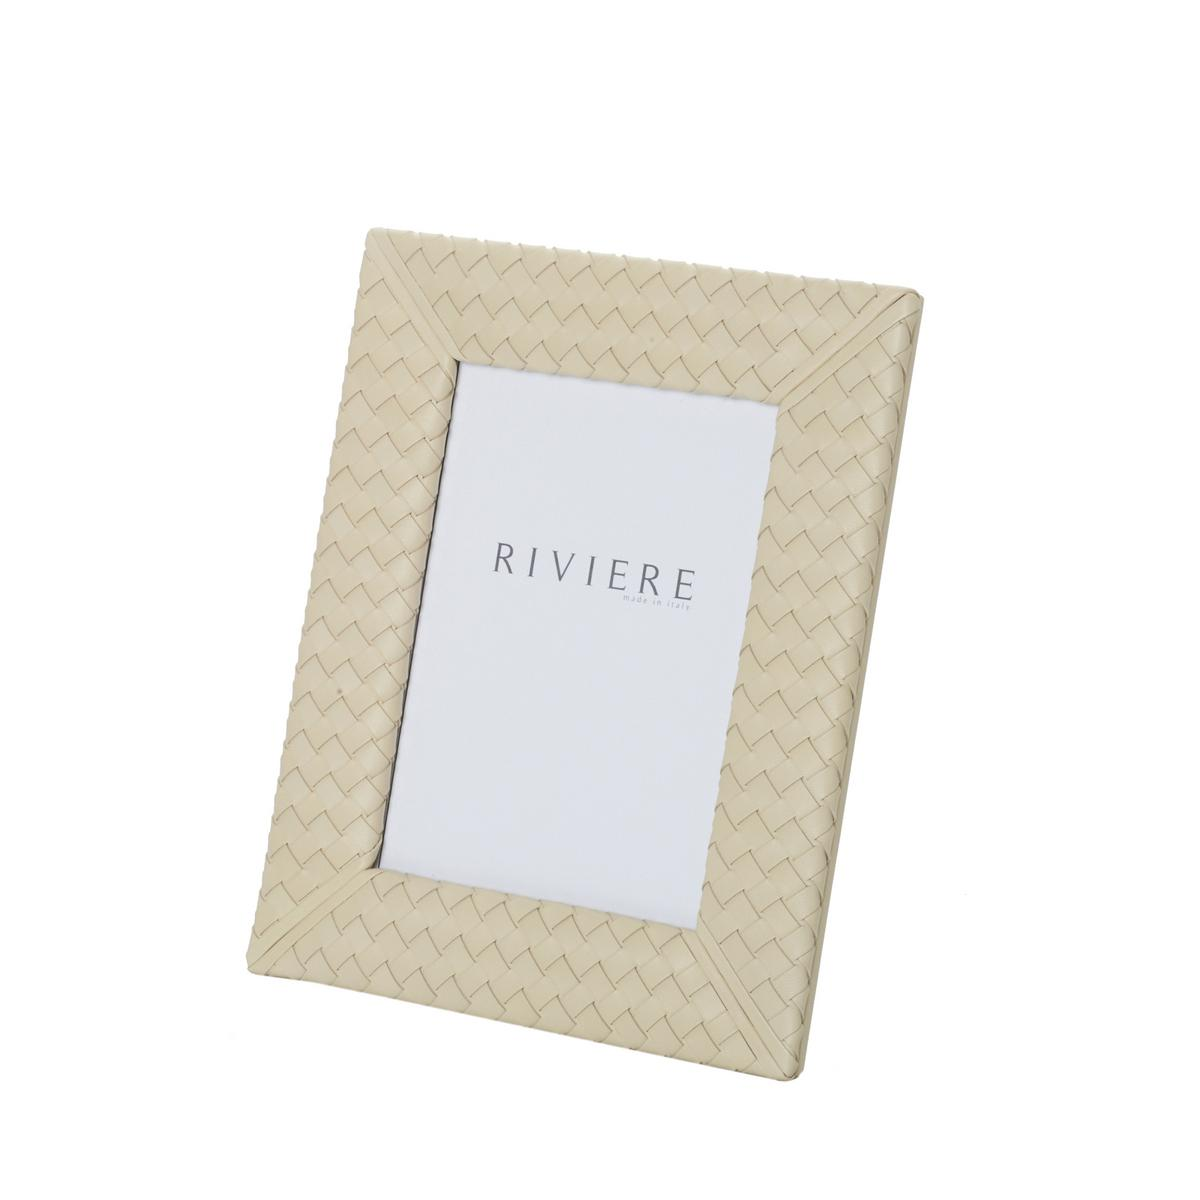 Riviere Milano leather frame, ivory, photo size 13 x 18 cm (5\'\' x 7 ...